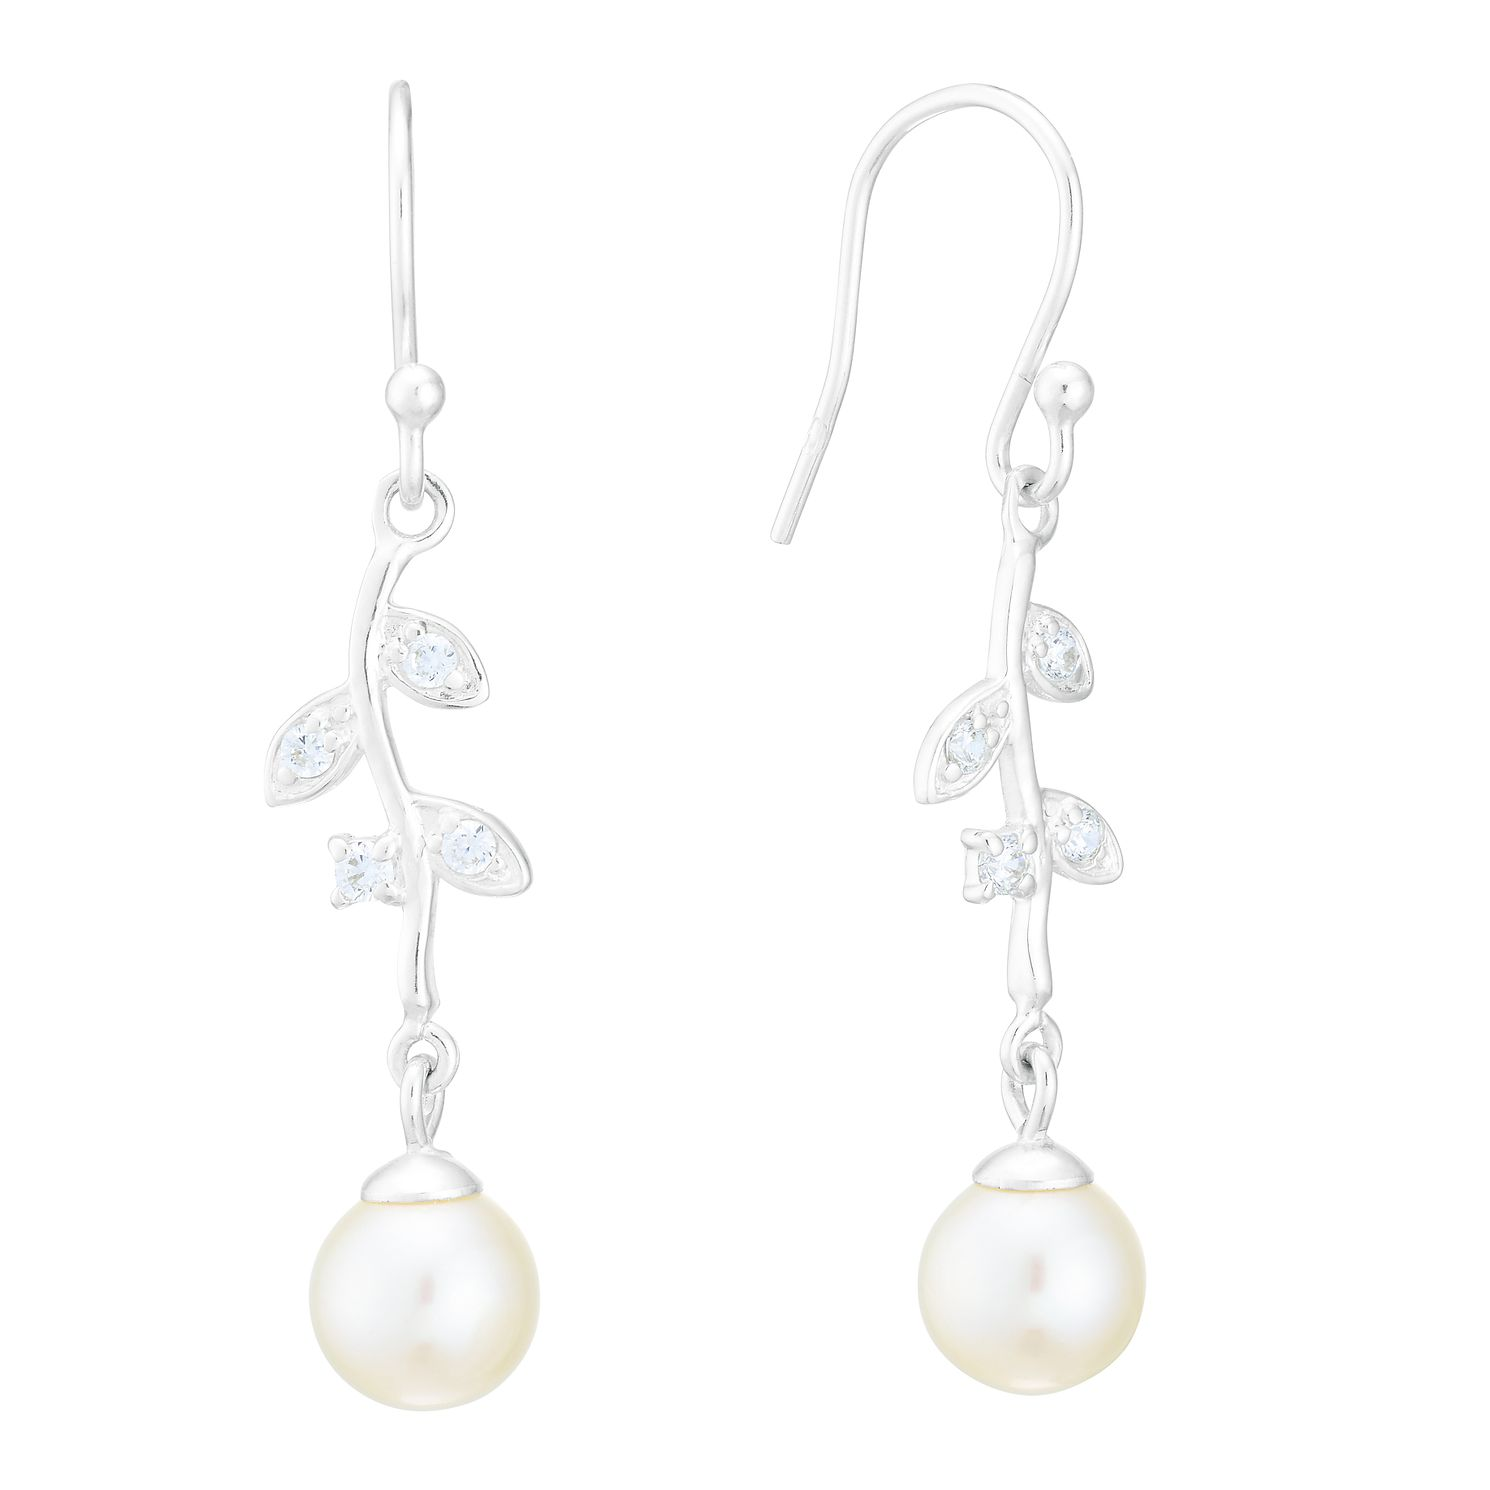 Silver Freshwater Pearl & Cubic Zirconia Drop Earrings - Product number 3917282